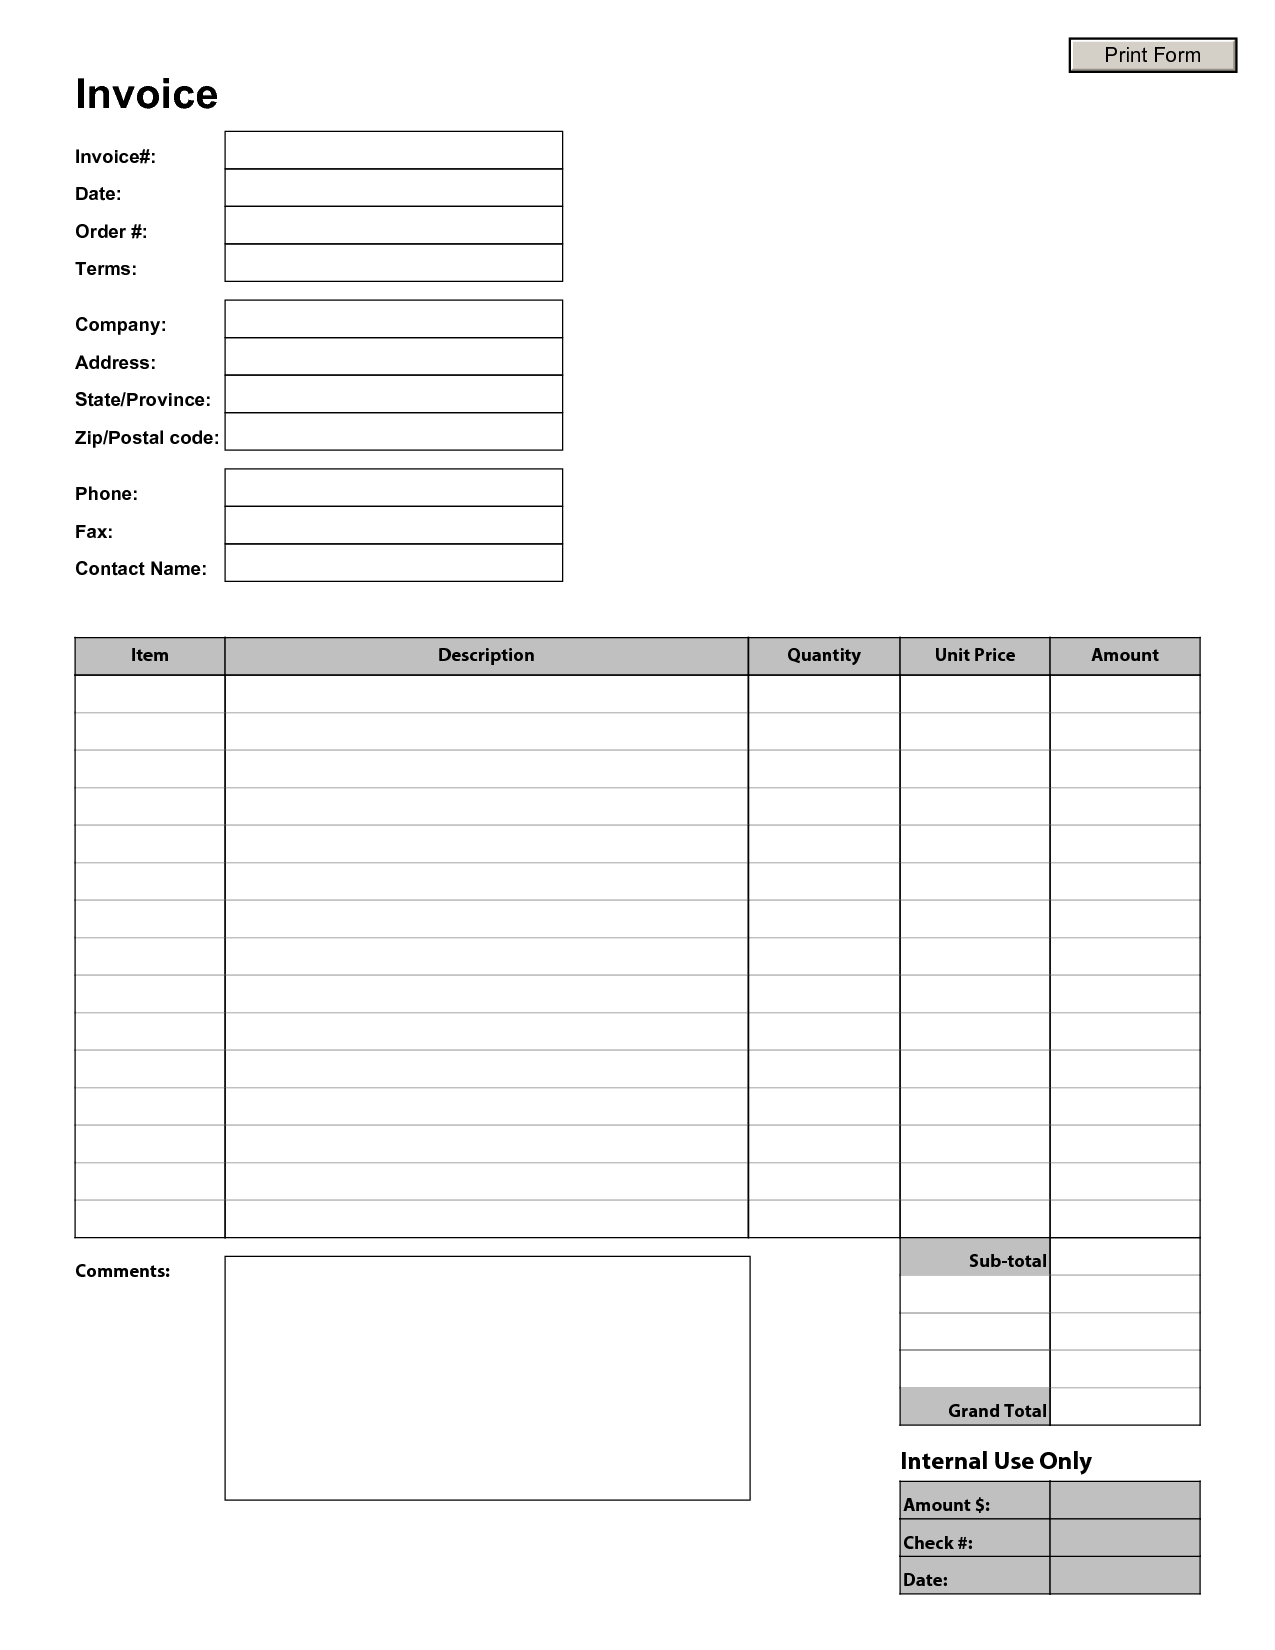 Free Invoice Template Downloads and Printable Invoice Template Invoice Example